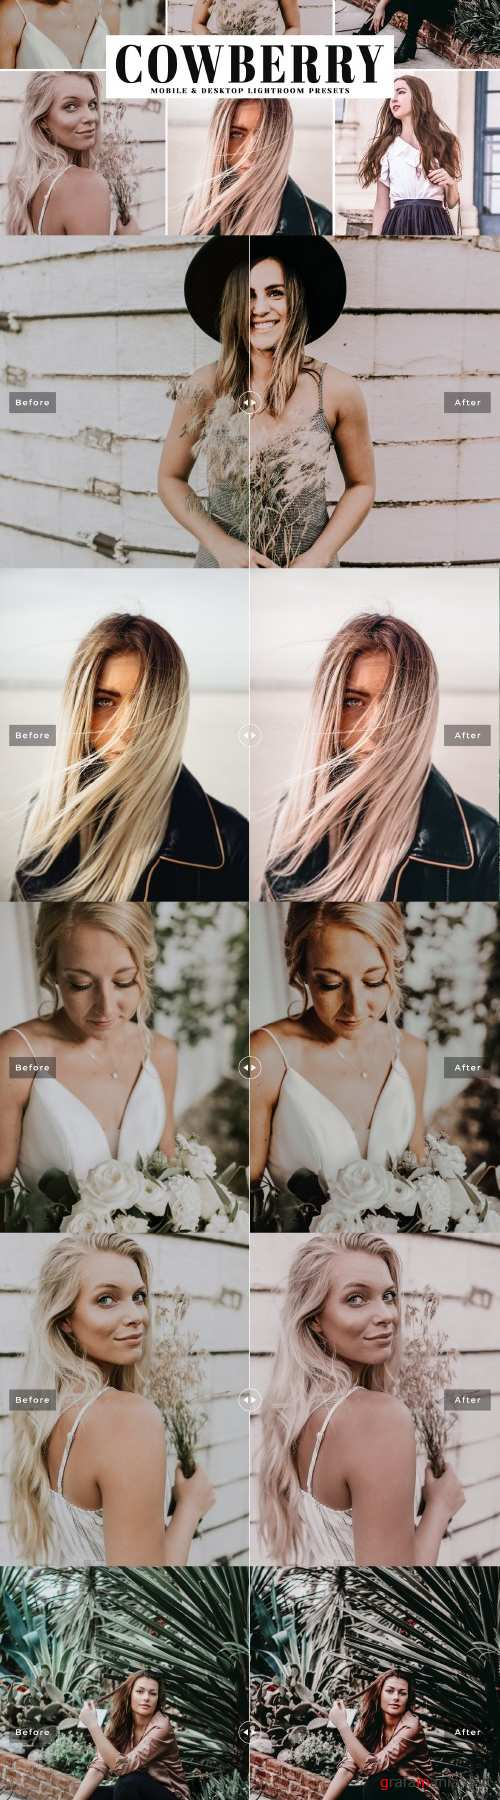 Cowberry Lightroom Presets Pack - 4045461